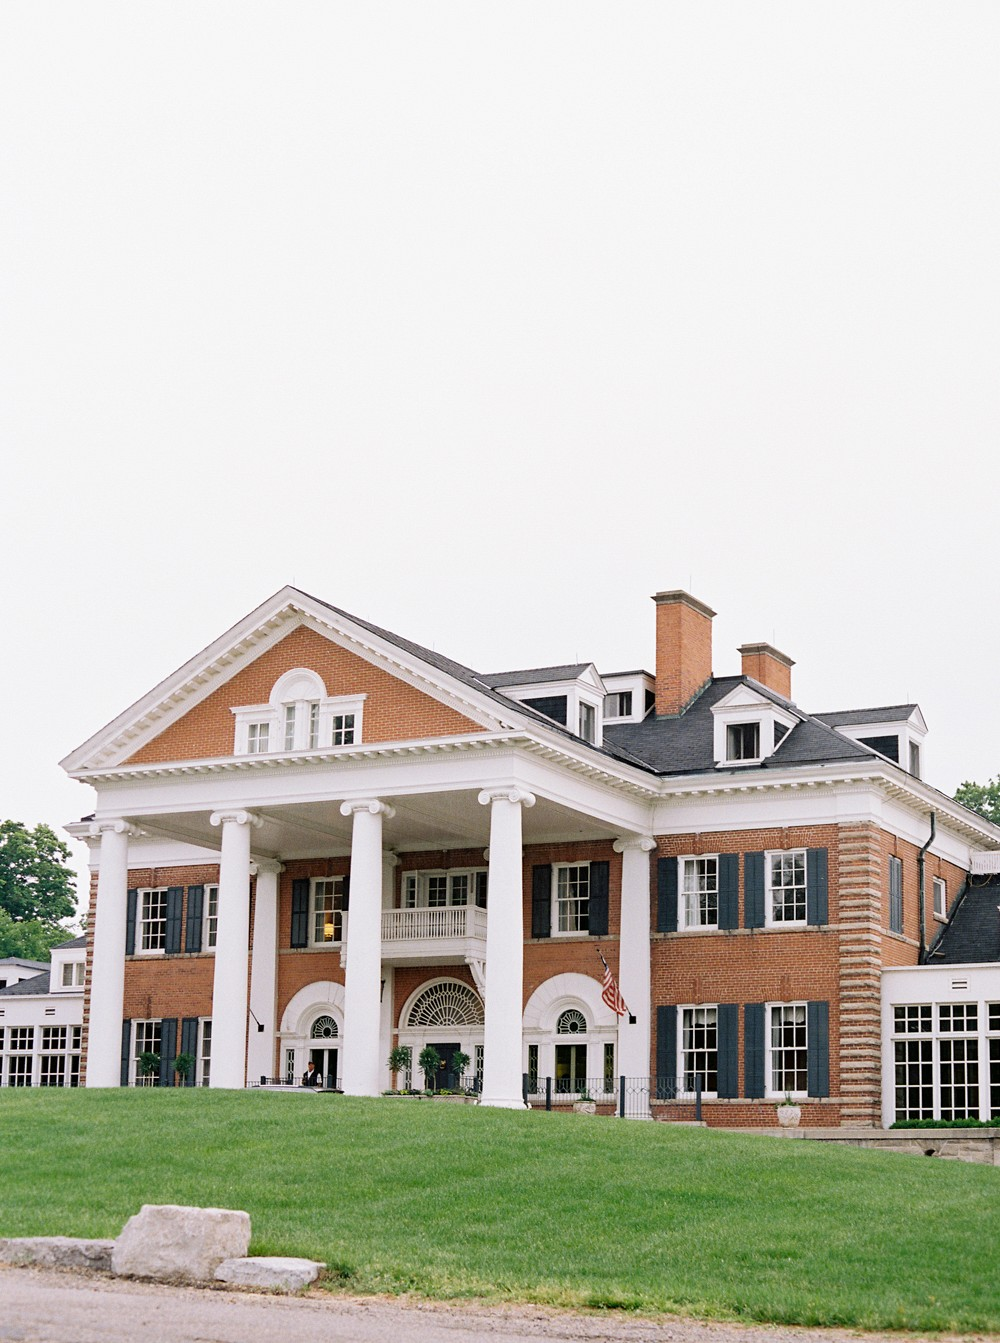 Canada wedding venue   Sophisticated Real Wedding in Ontario by When He Found Her on Wedding Sparrow